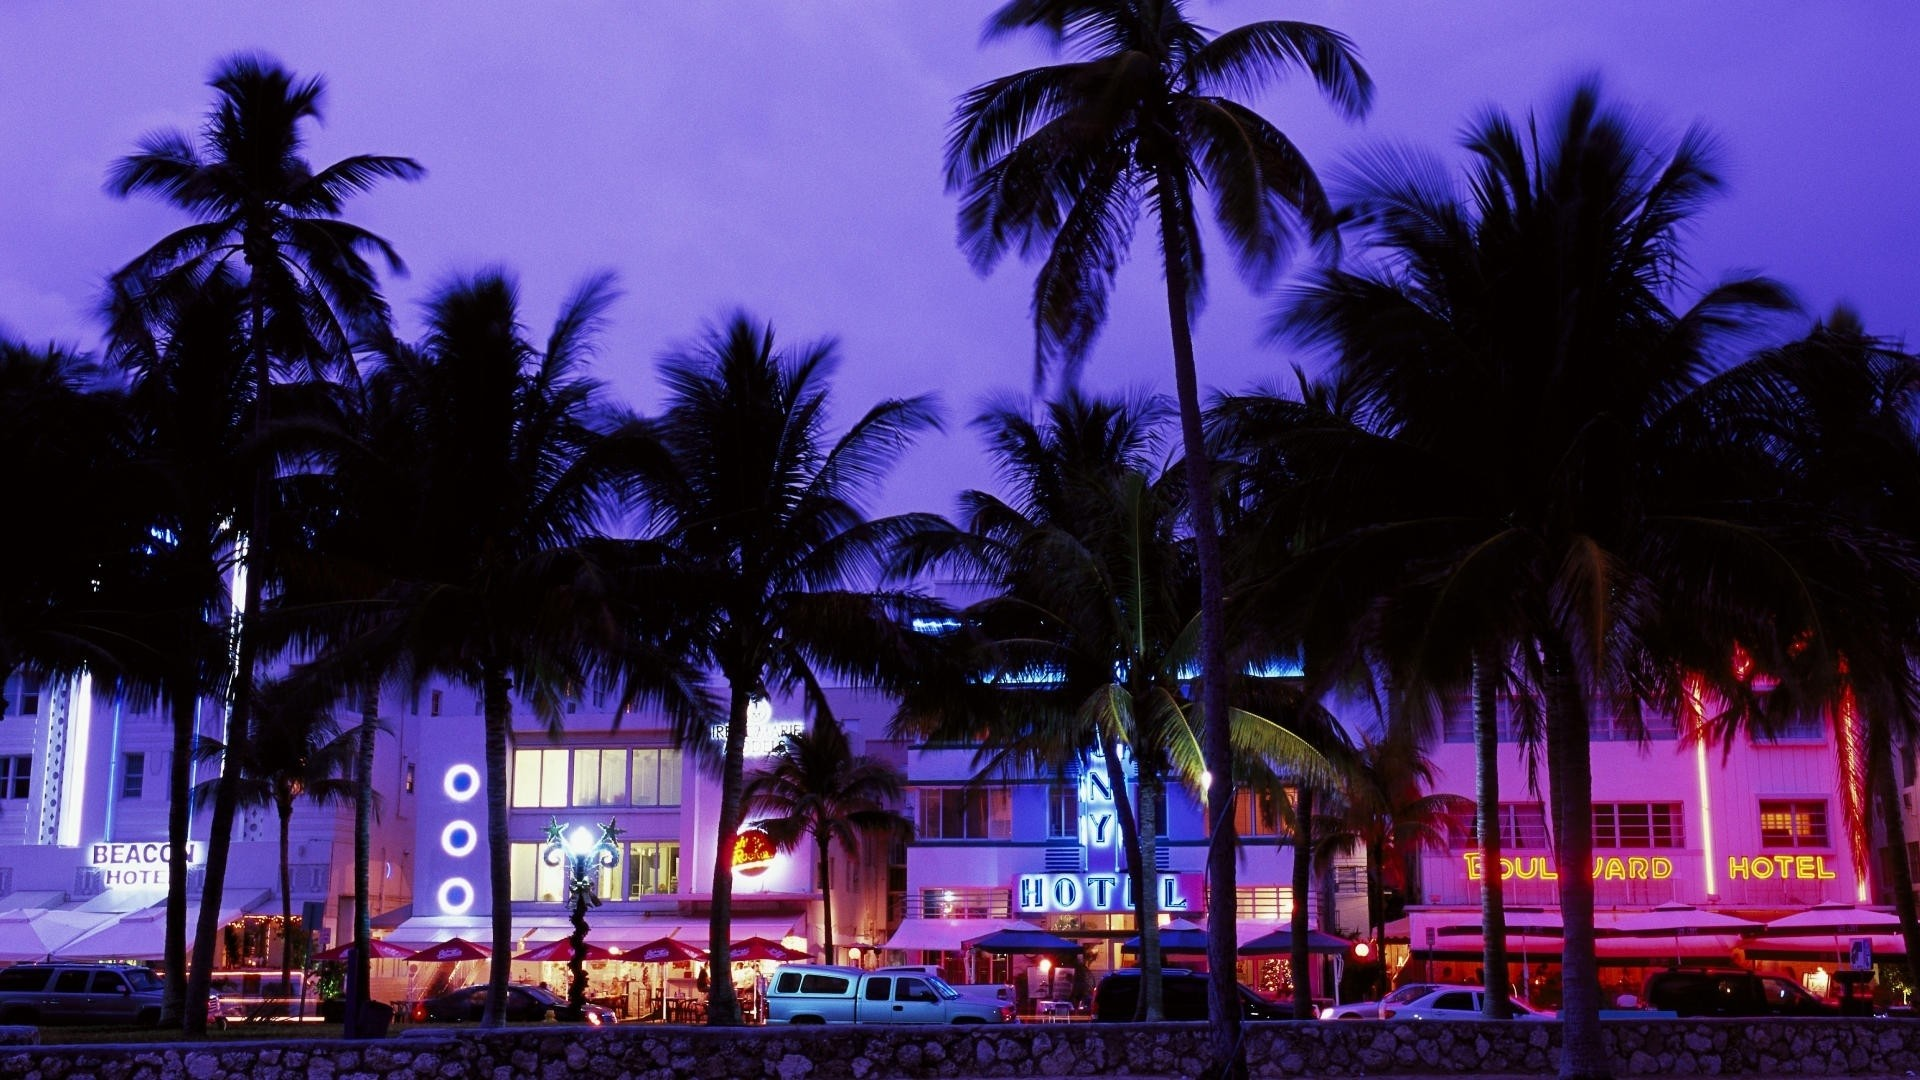 Night miami ocean drive wallpaper 1920x1080 188798 wallpaperup voltagebd Choice Image